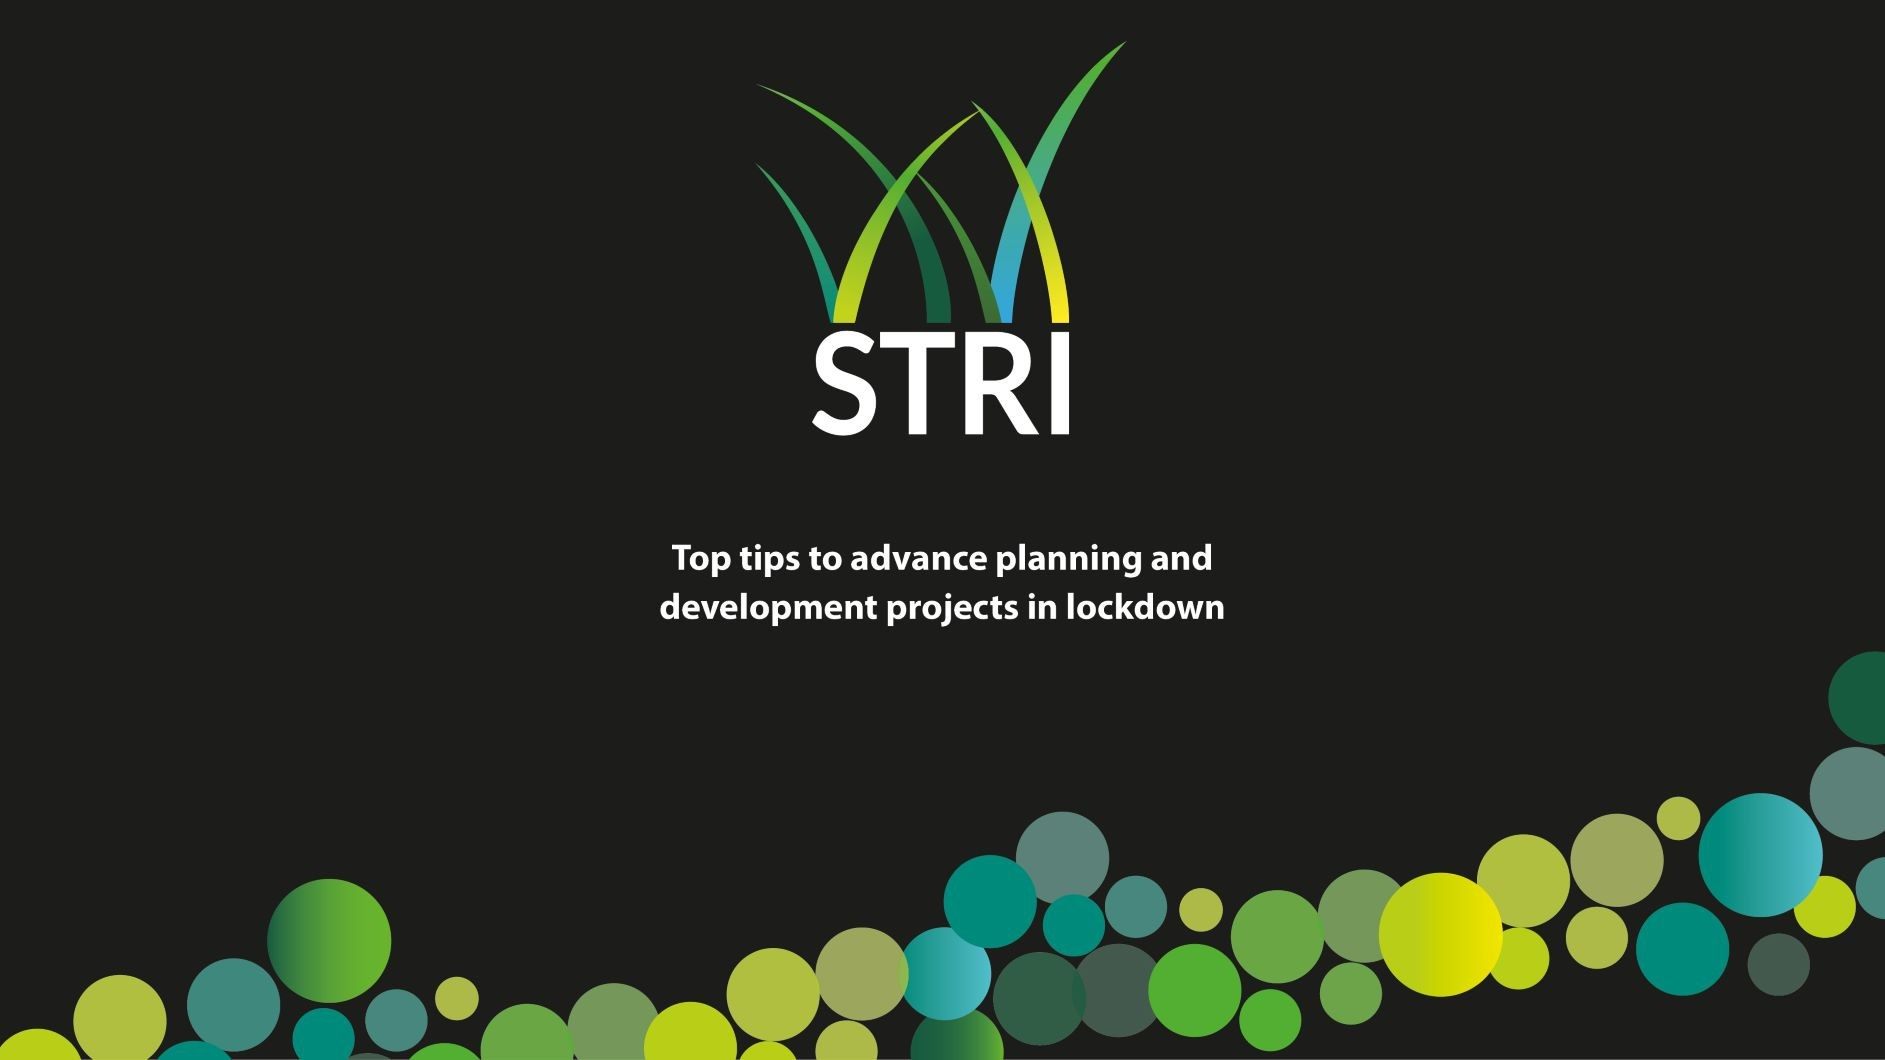 Top tips to advance development projects in lockdown